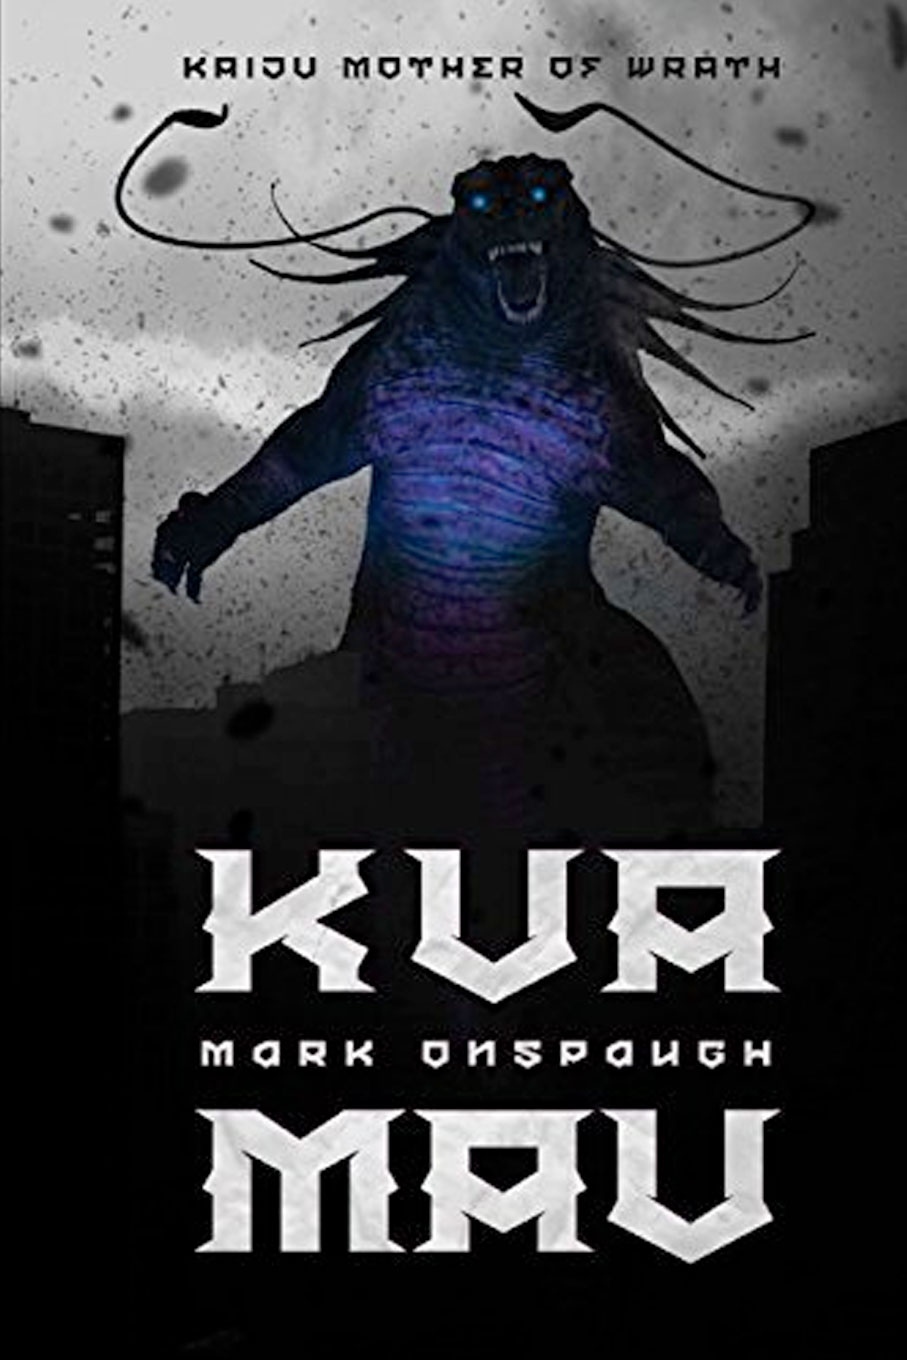 Kua'Mau: Kaiju Mother Of Wrath